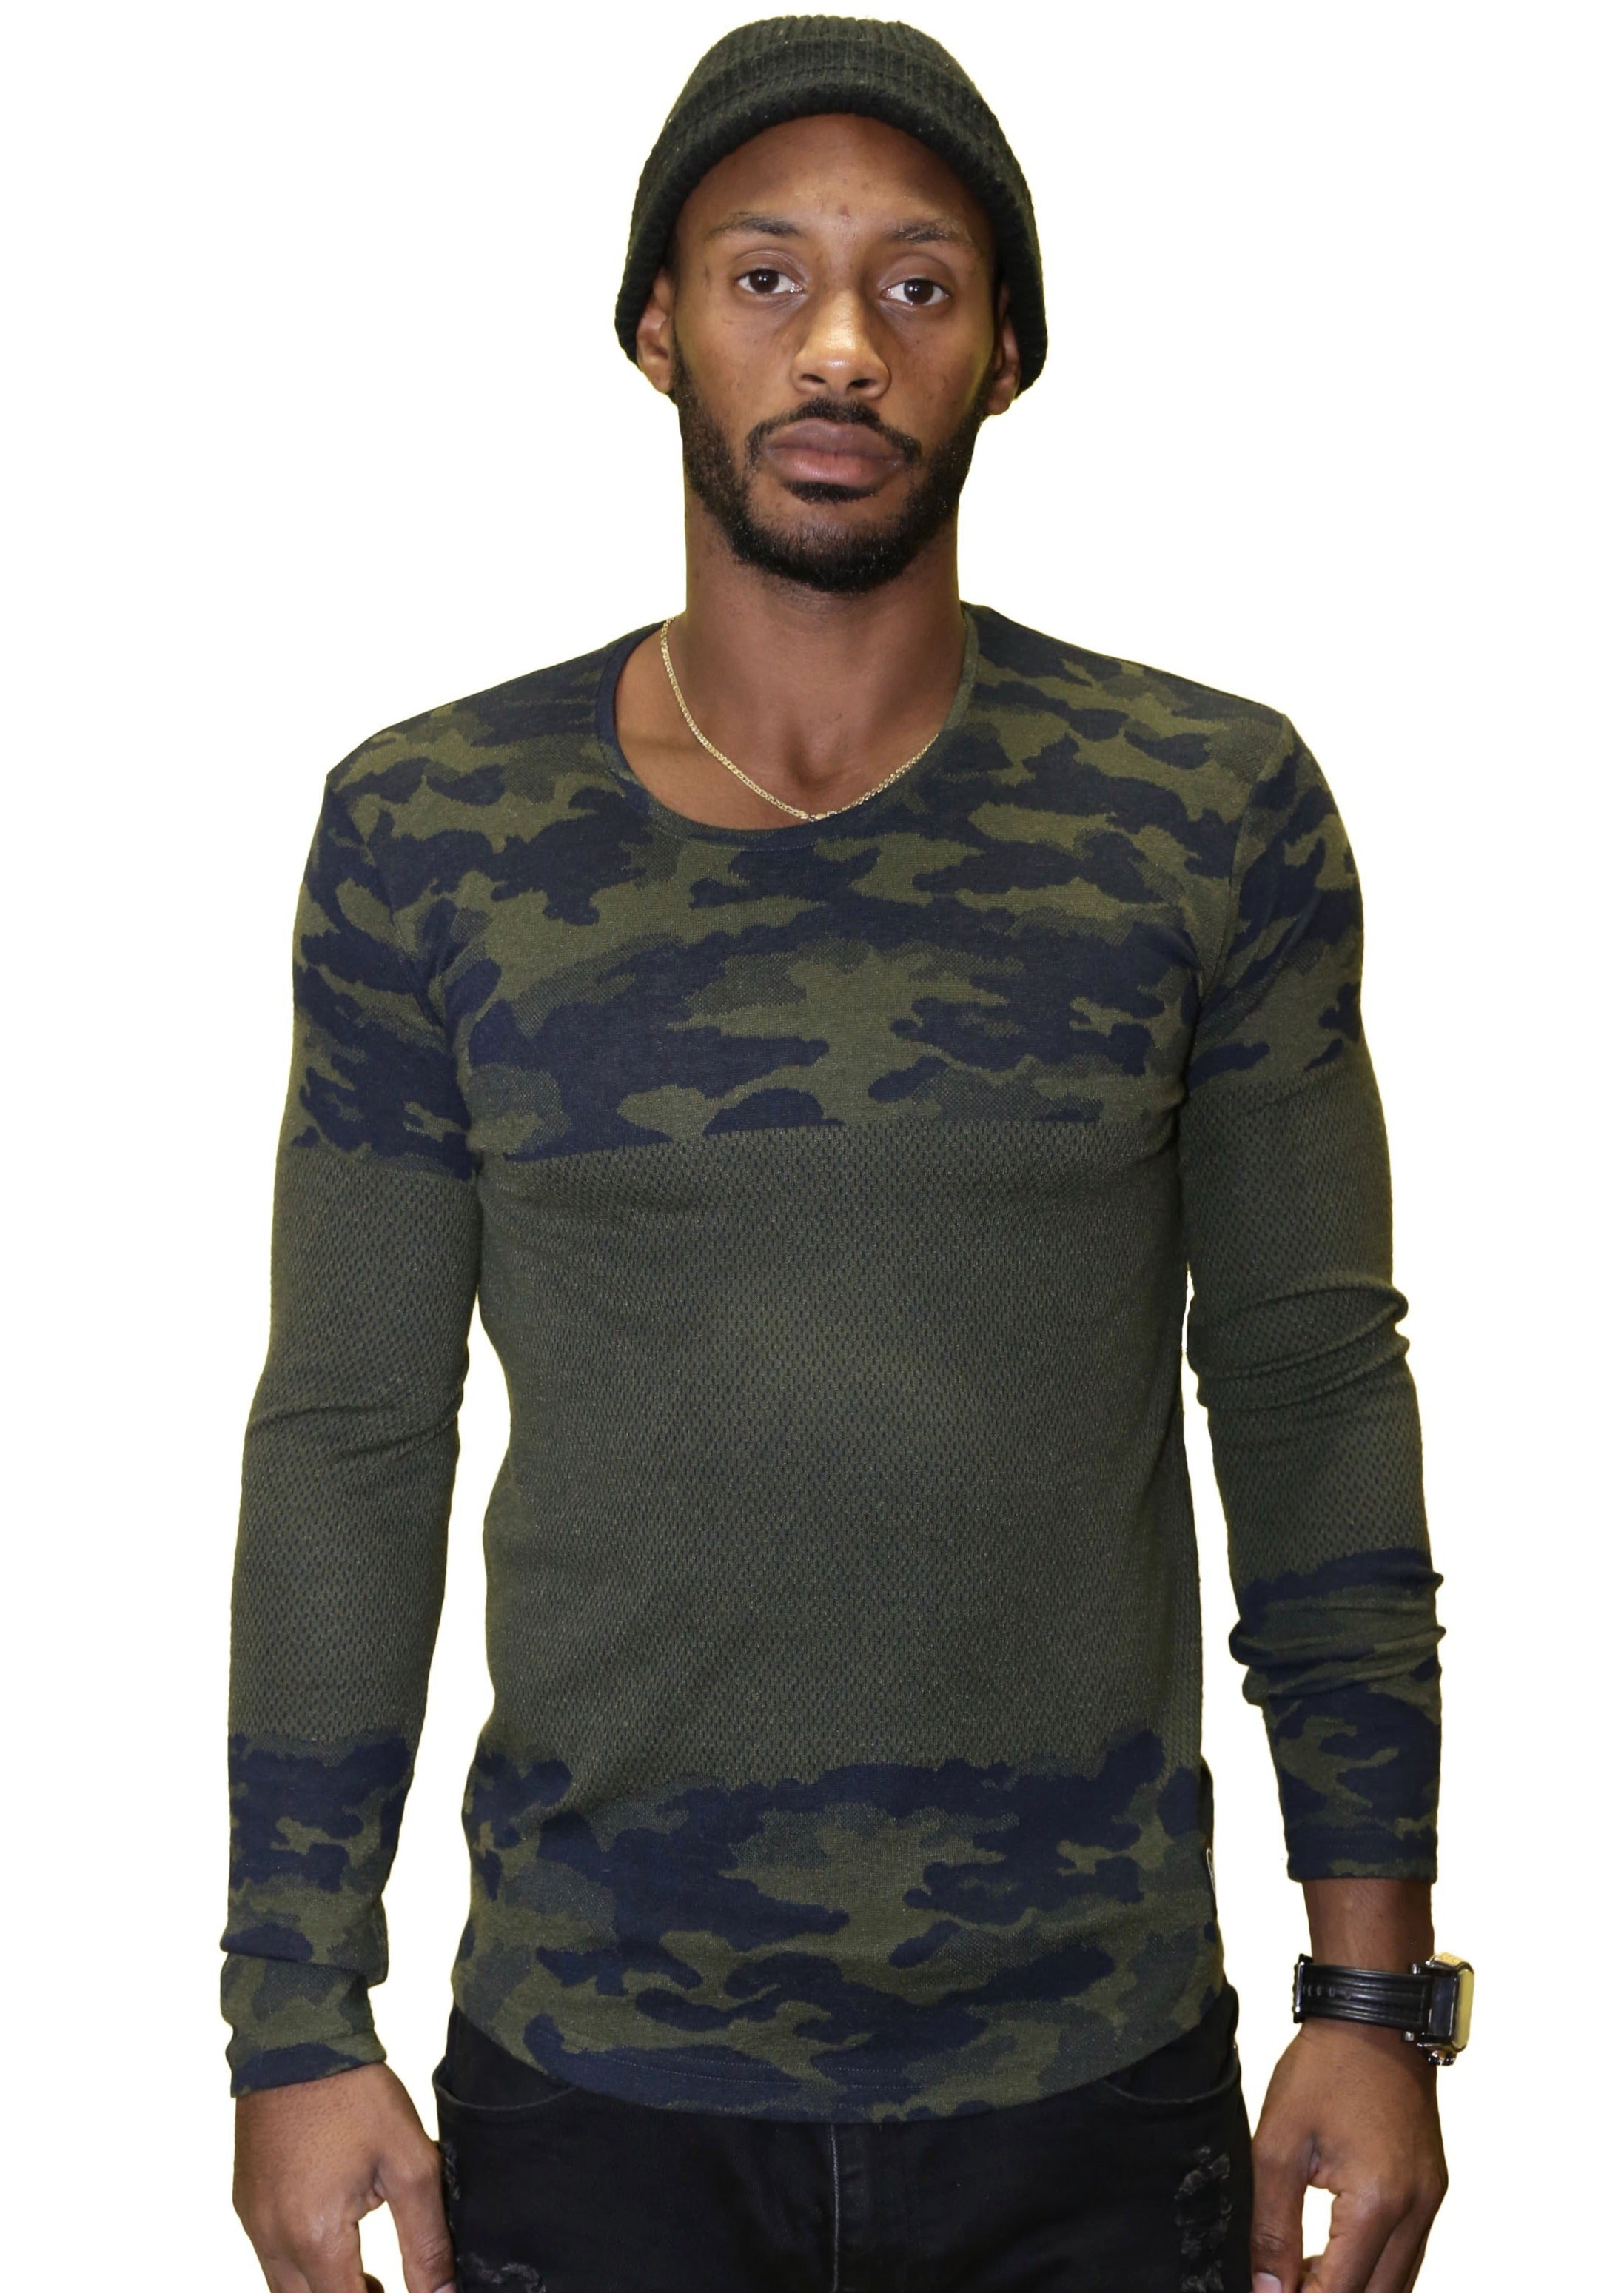 Saw LS European Slim Fit Camouflage Sweater (Army Green) - Posh By K